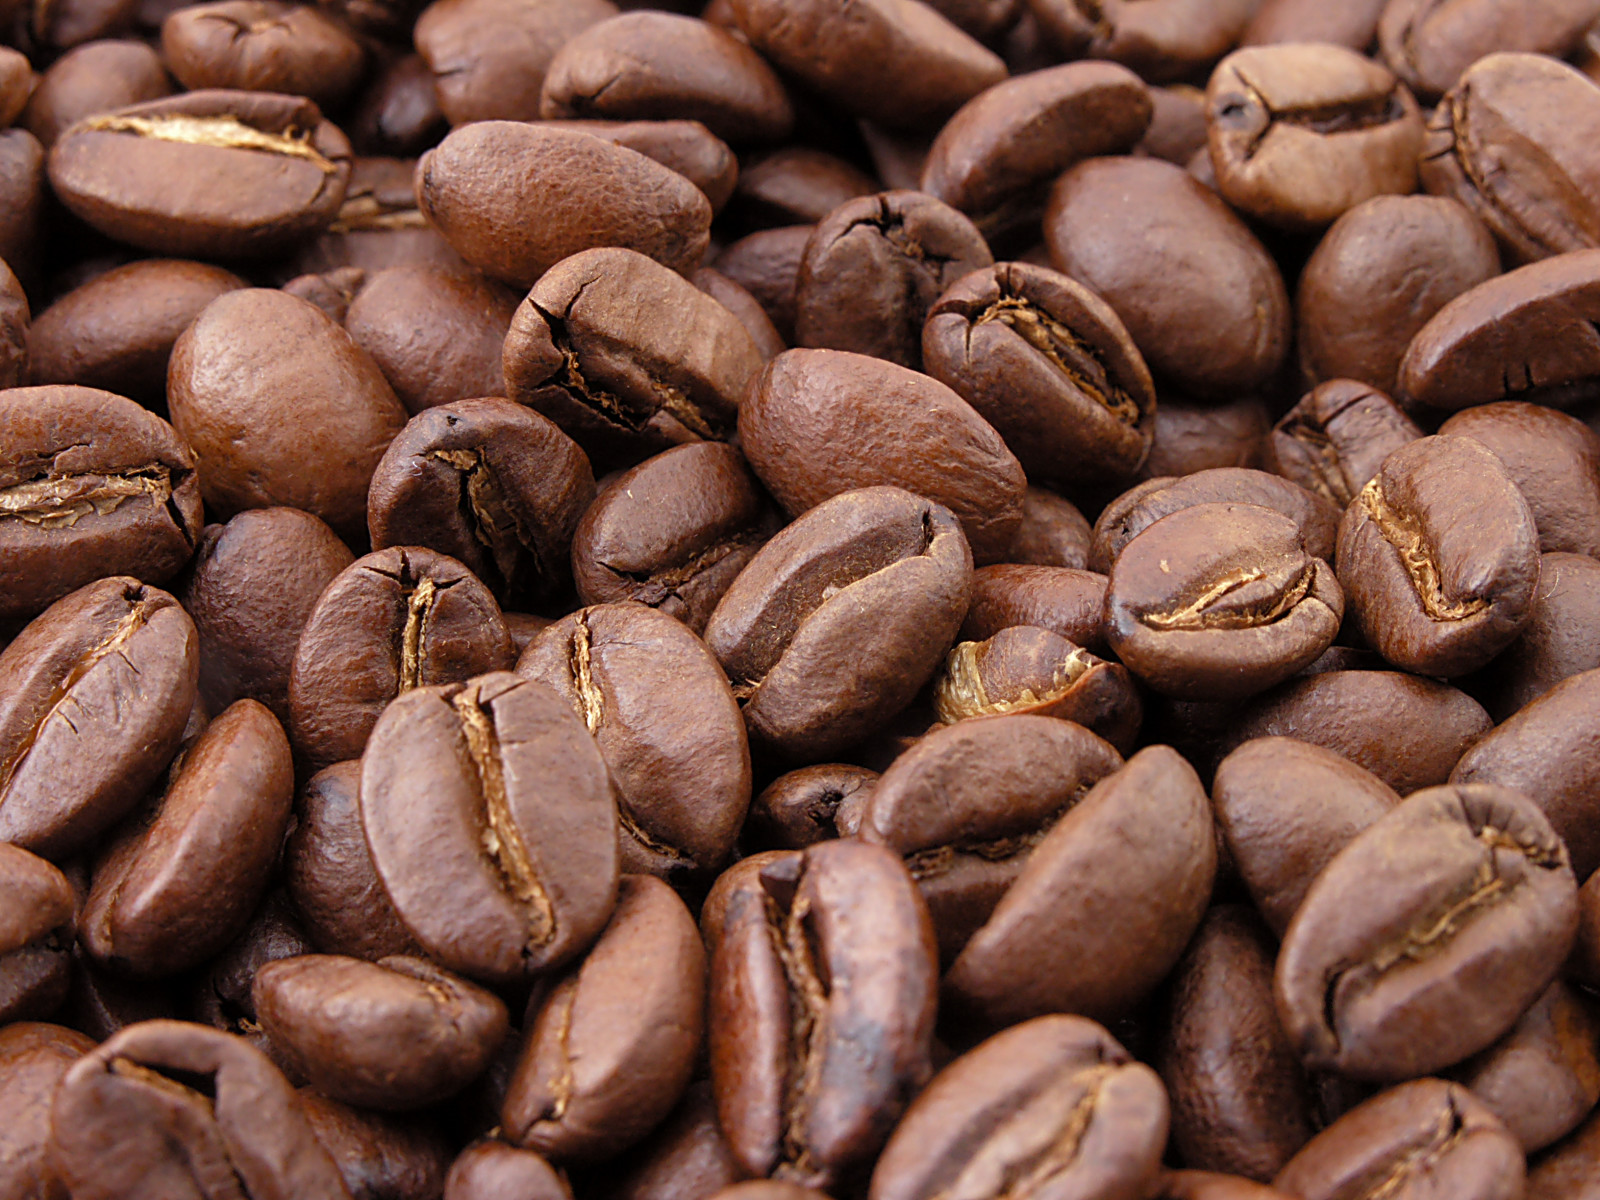 Roasted_coffee_beans[1]